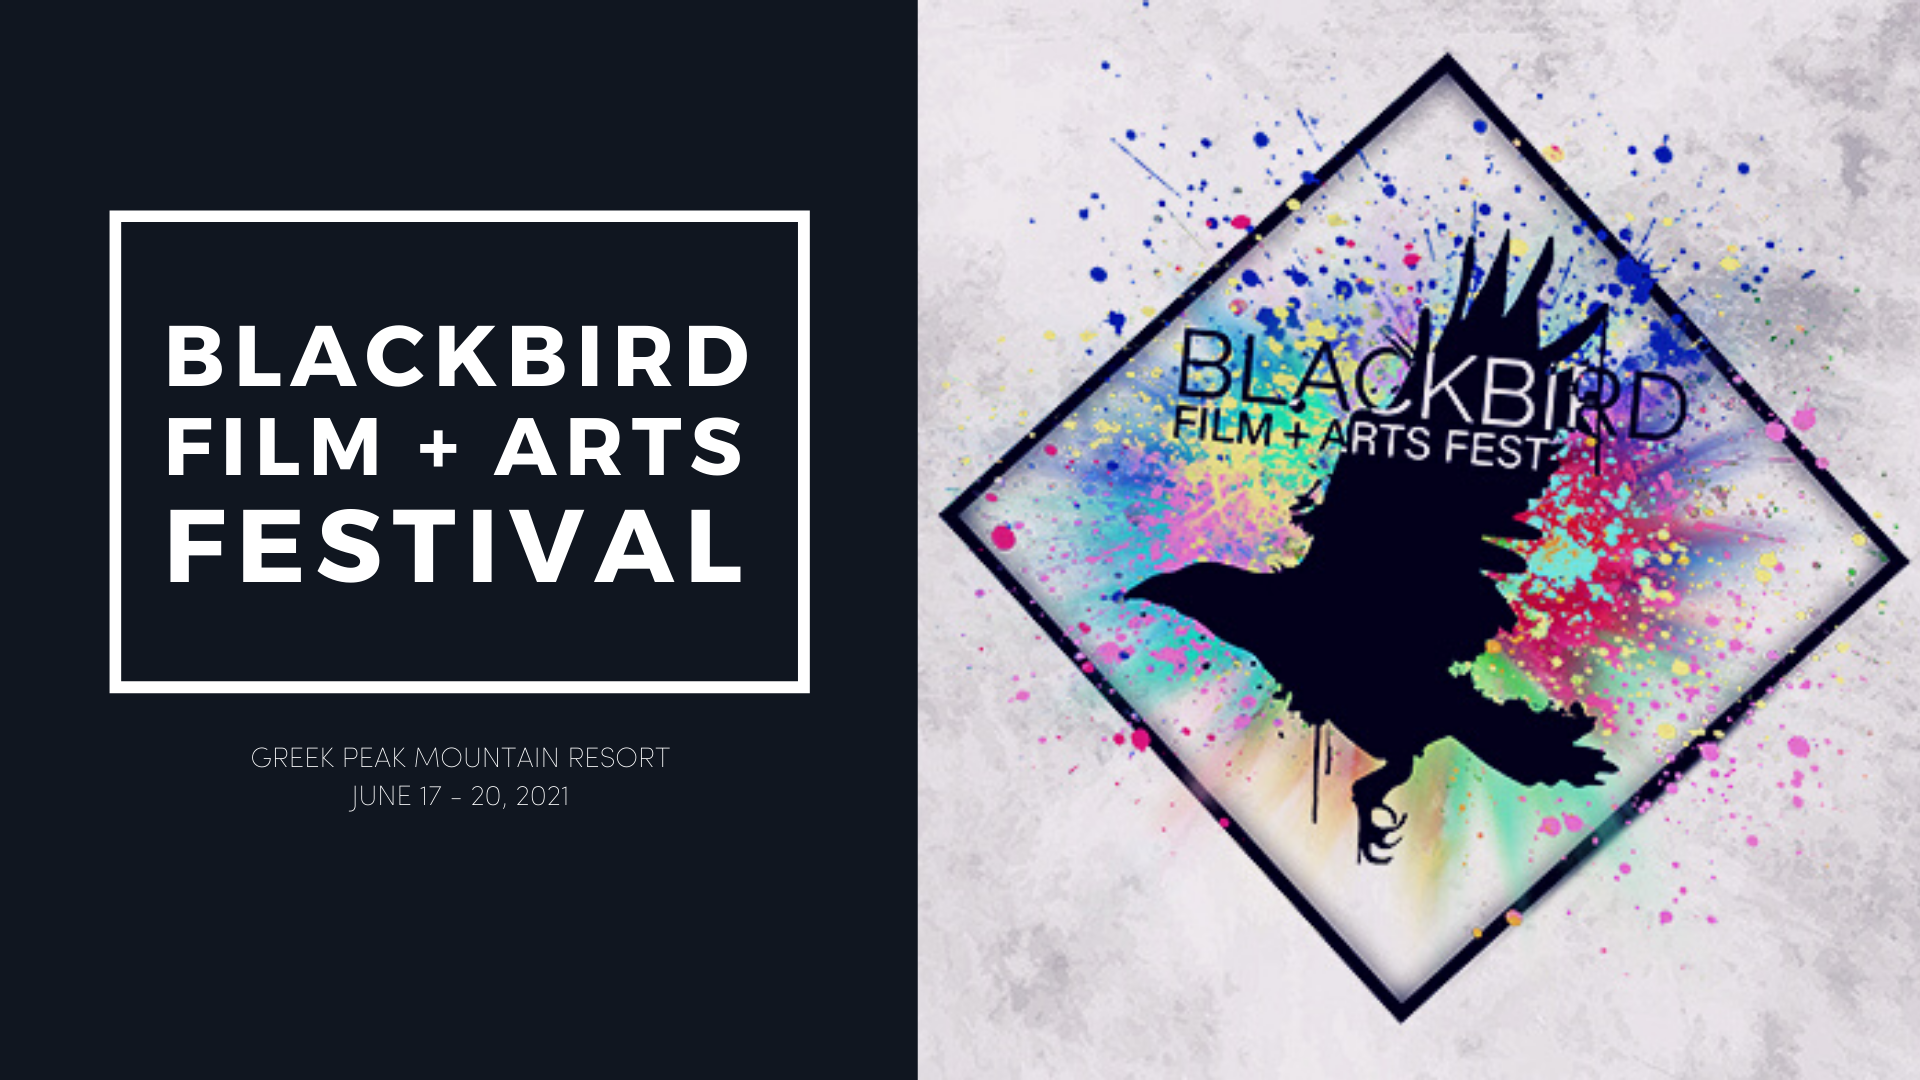 a blackbird in a square with colorful splatter paint promoting the upcoming Blackbird Film Festival we are having at Greek Peak June 17th-20th.